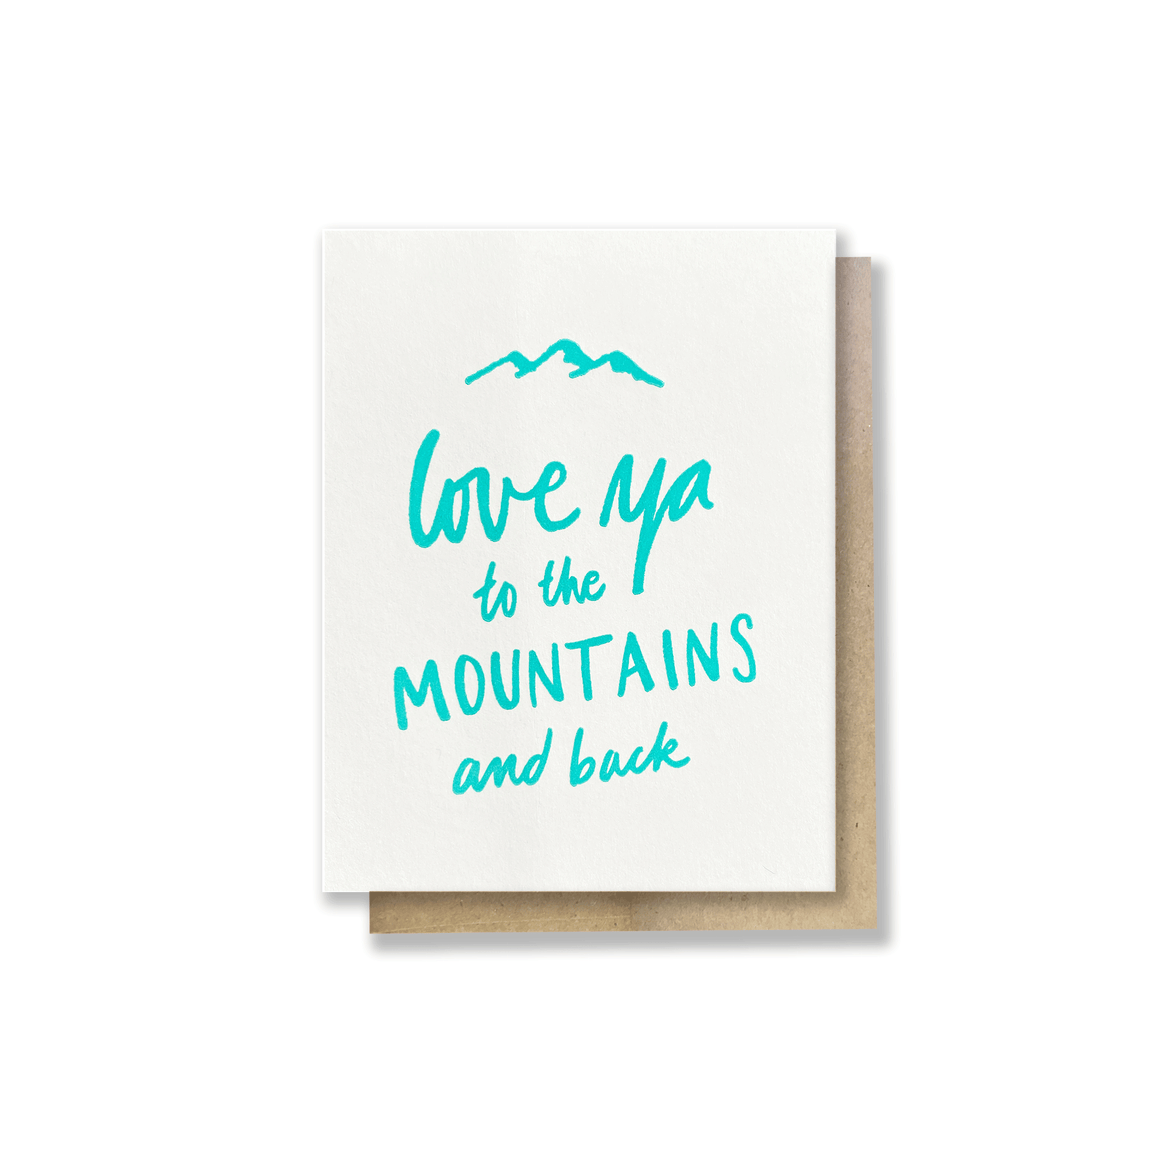 To the Mountains Greeting Card